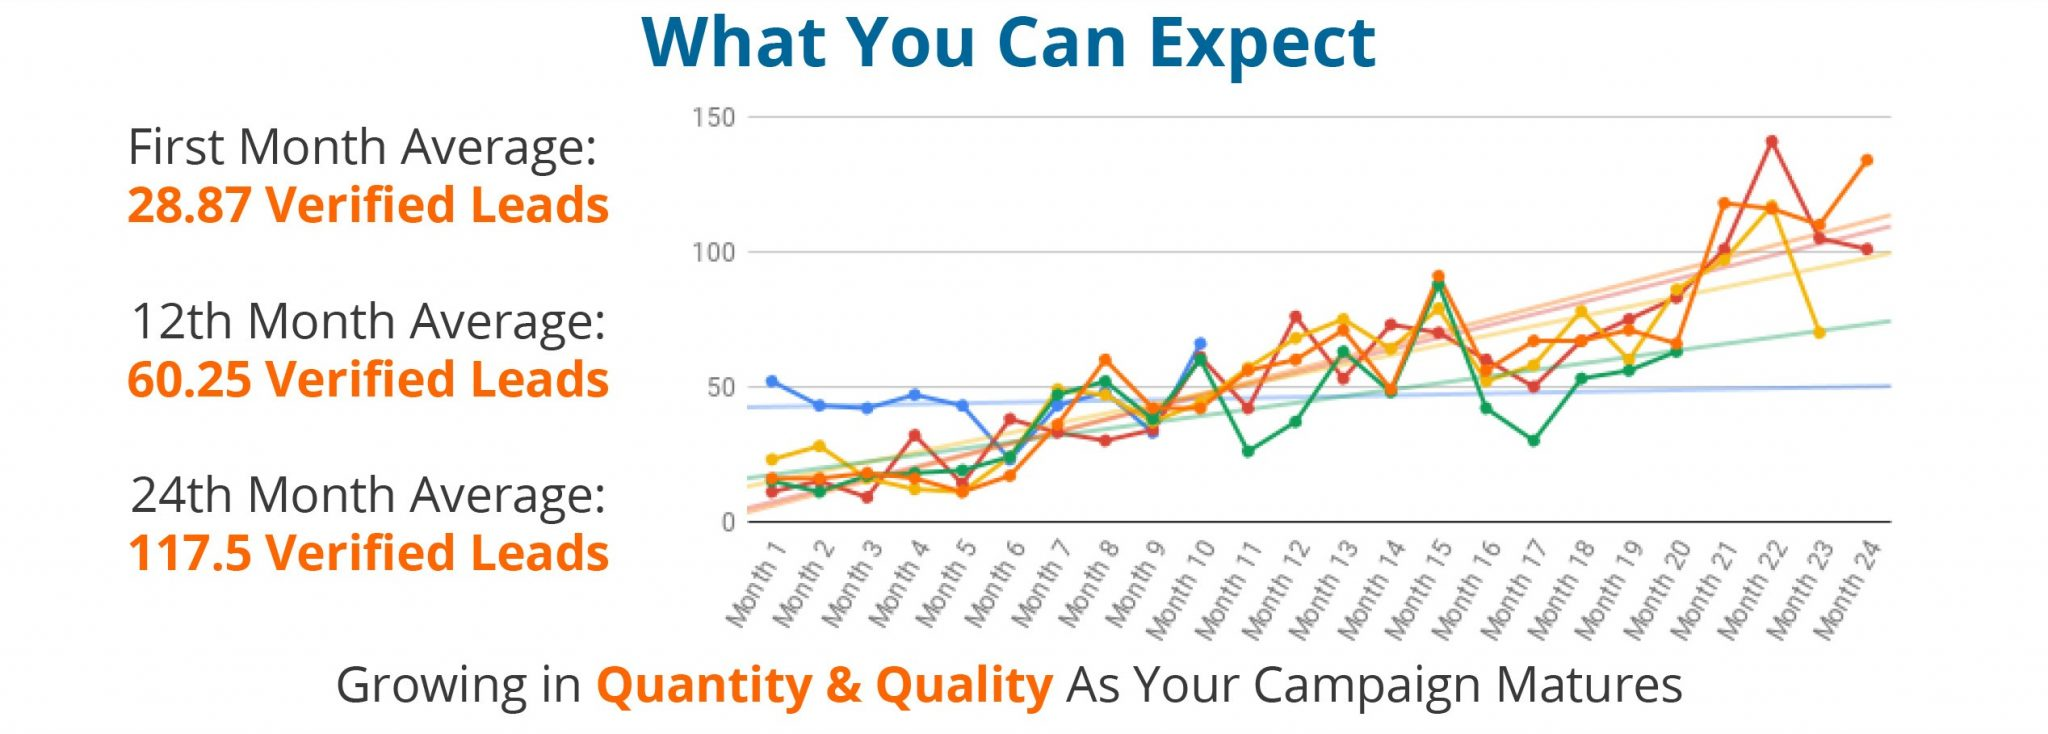 Lead Count Expectations